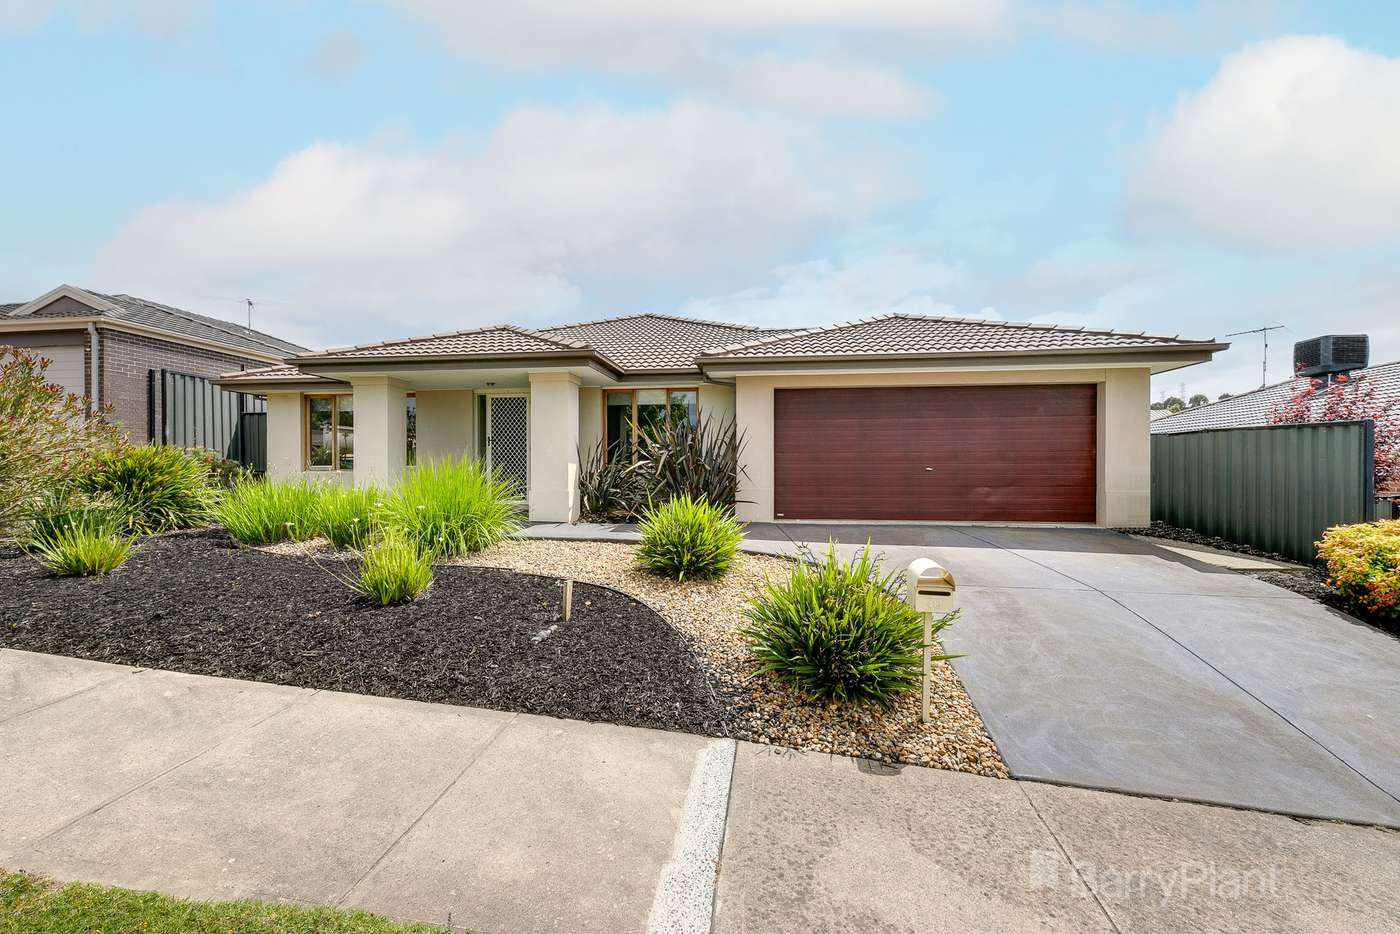 Main view of Homely house listing, 30 Victoria Place, Pakenham VIC 3810